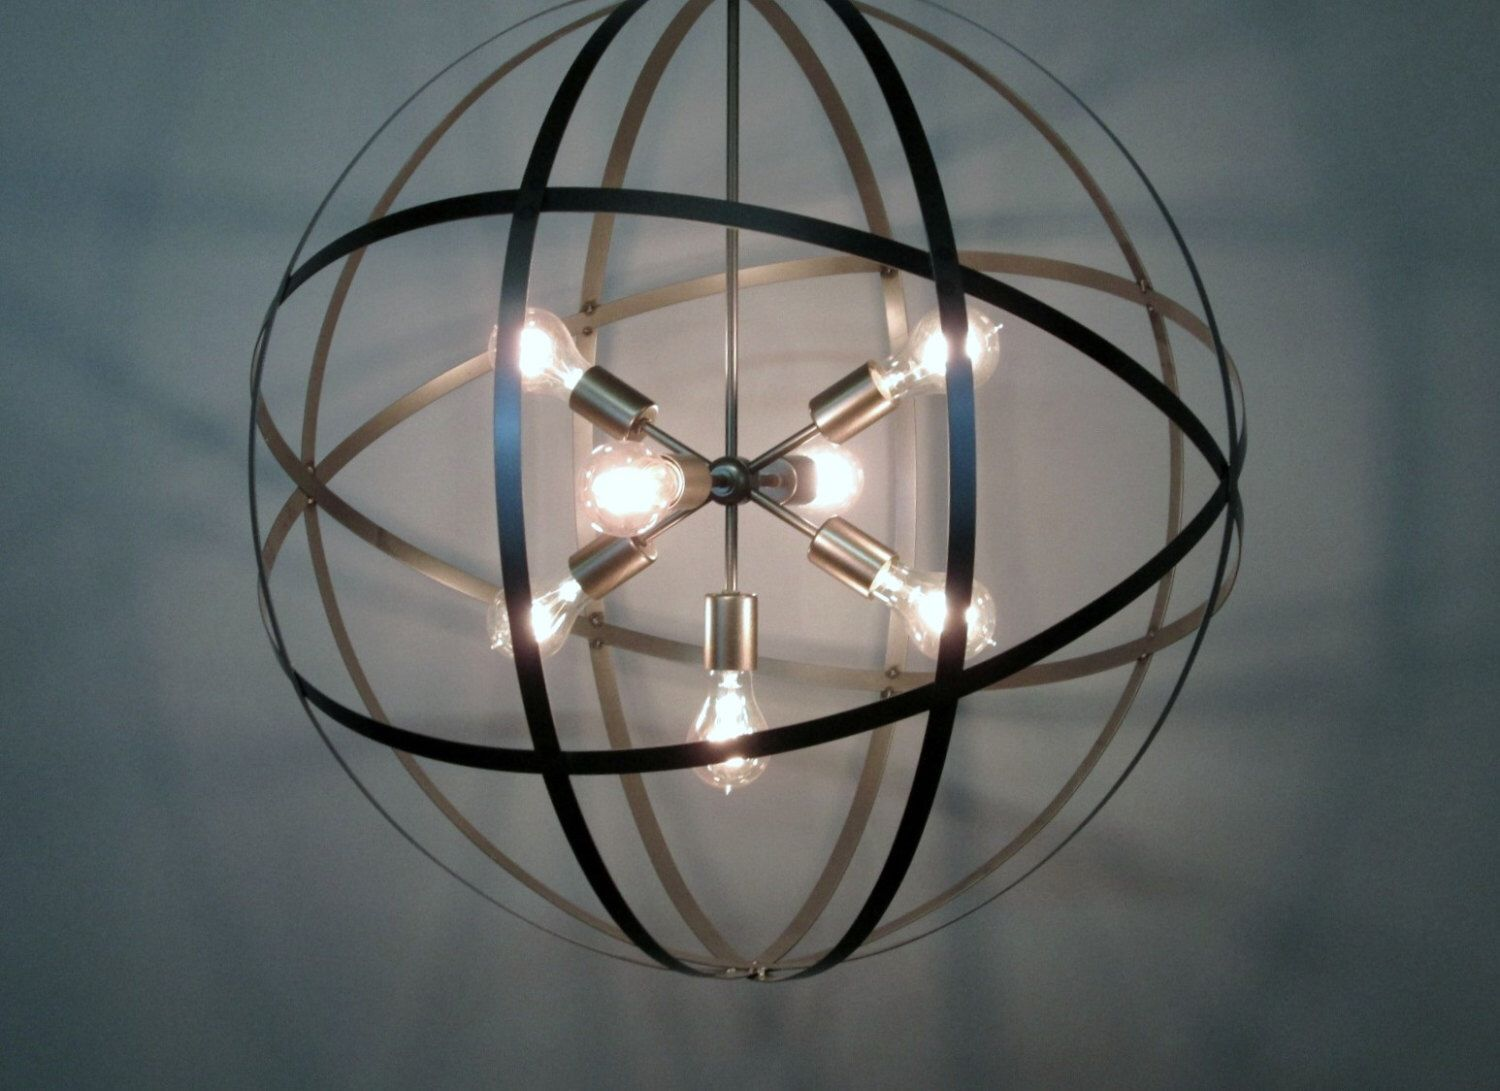 Industrial steel strap 30 inch orb ceiling light sphere wine barrel industrial steel strap 30 inch orb ceiling light sphere wine barrel ring 7 light 70 arubaitofo Images